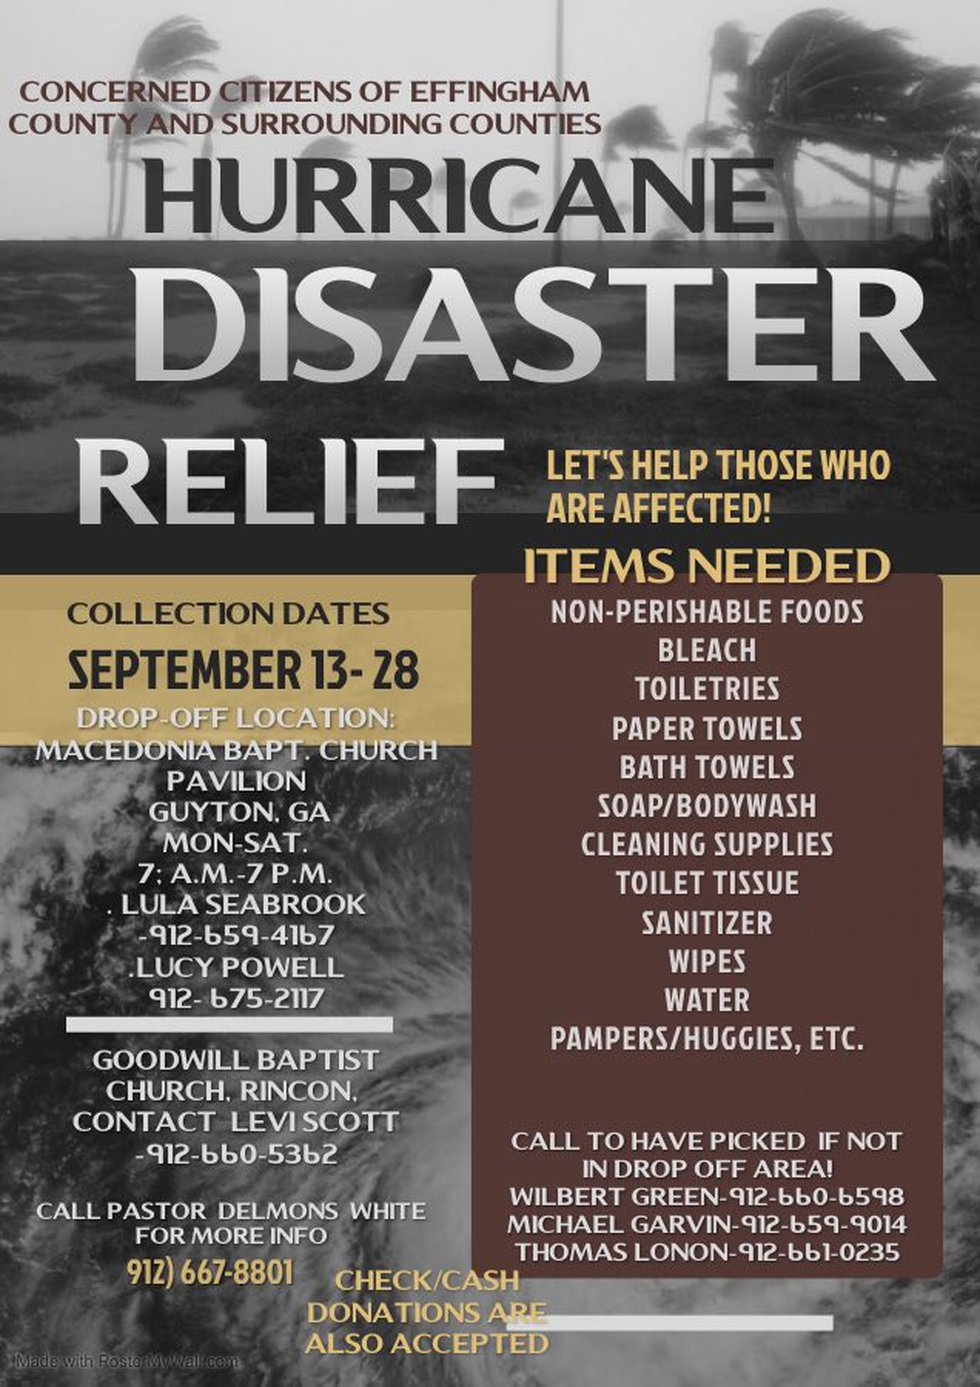 Hurricane Disaster Relief